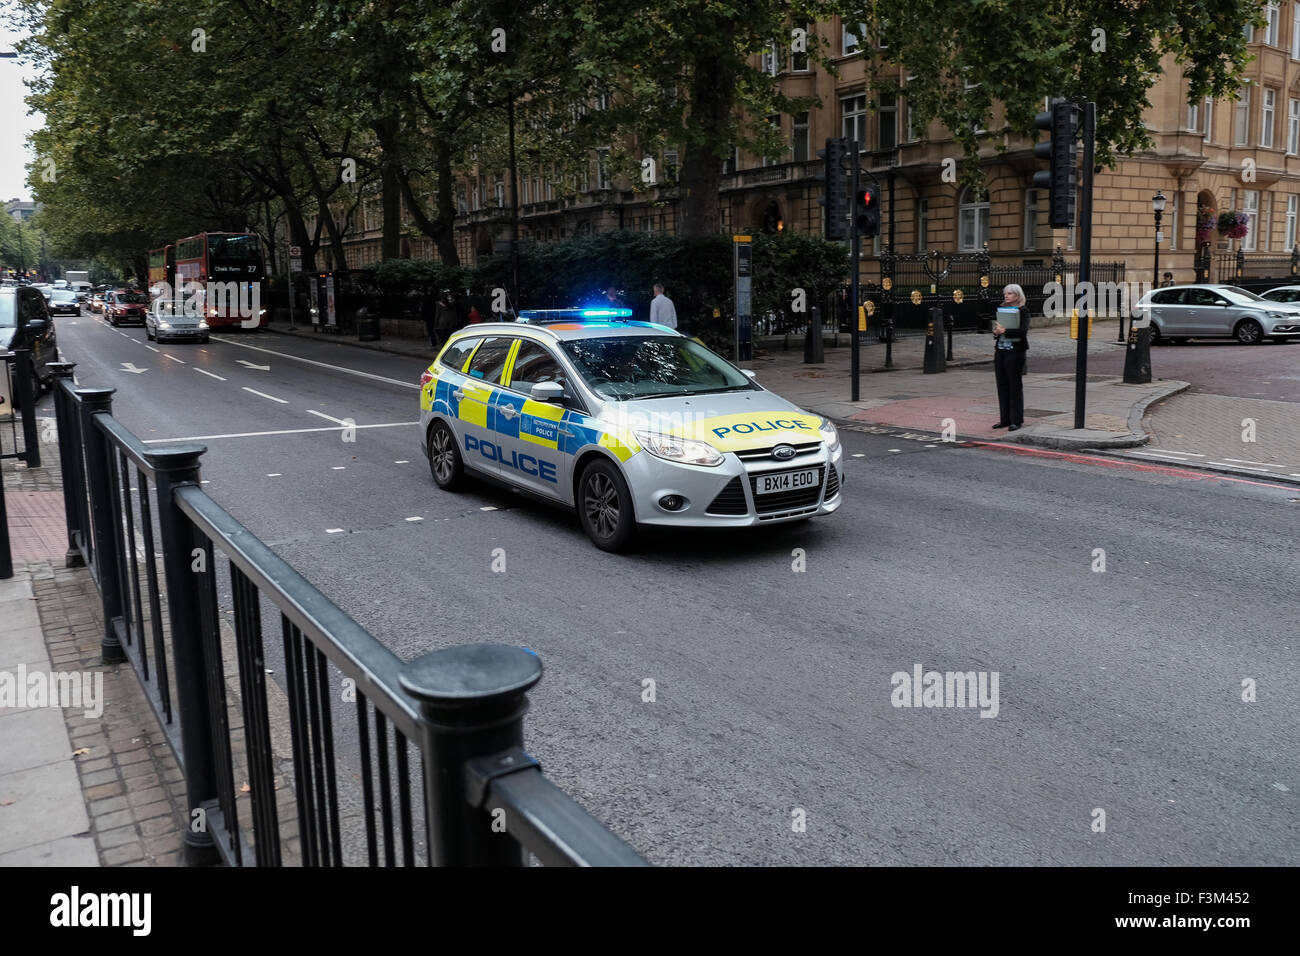 A London metropolitan police car on an Emergency call - Stock Image